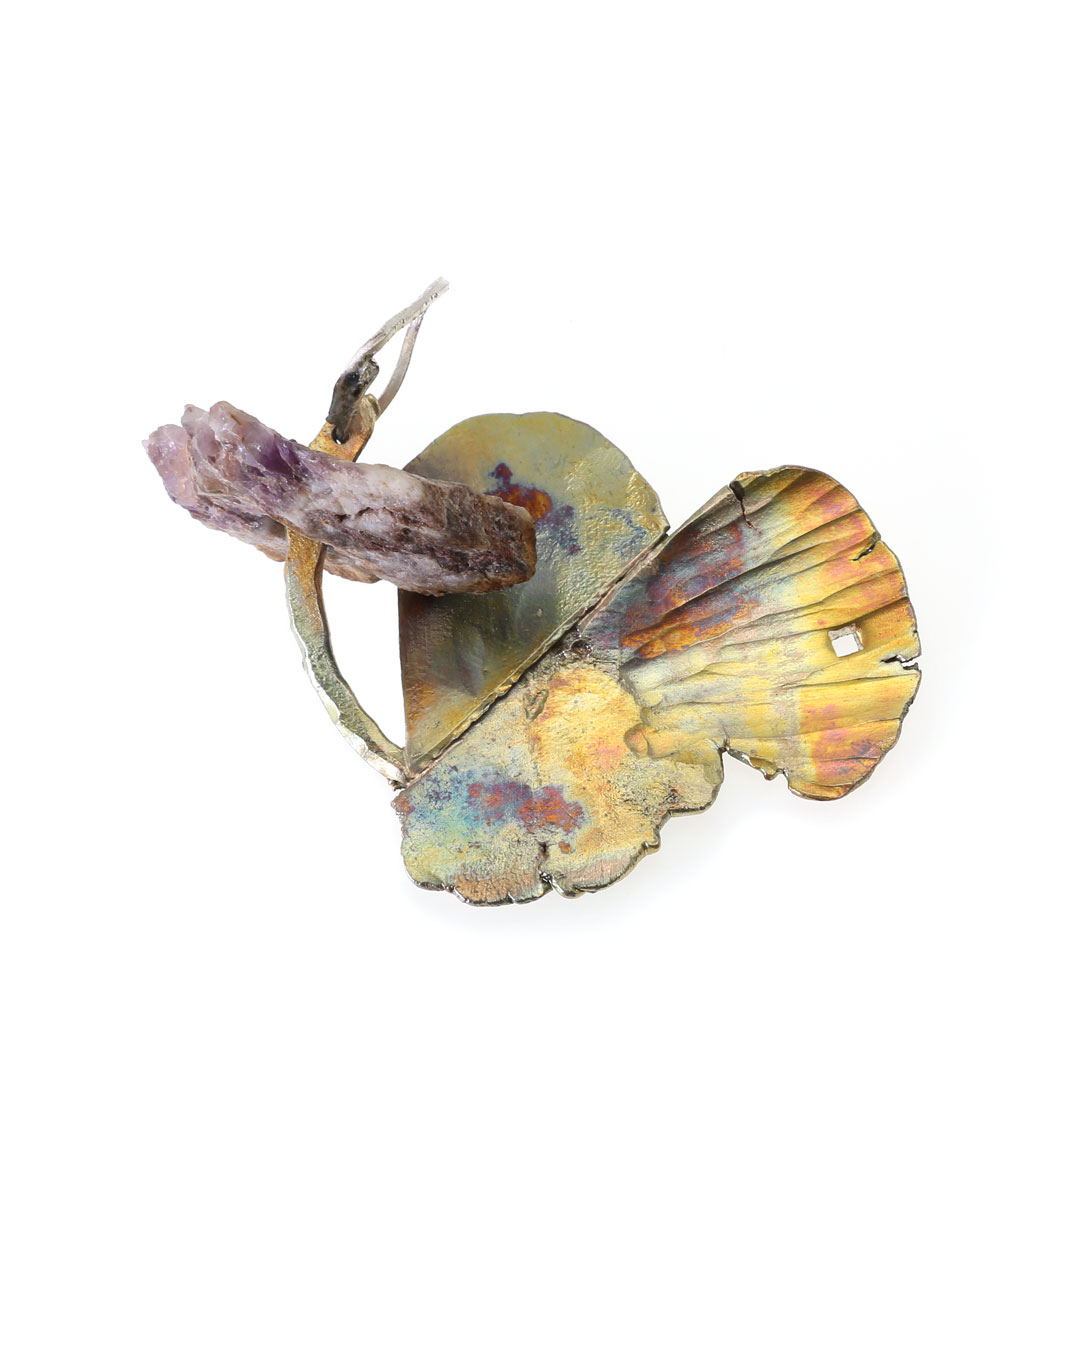 Rudolf Kocéa, Tit, 2017, pendant; silver, copper, rock, 90 x 70 x 30 mm, €1300